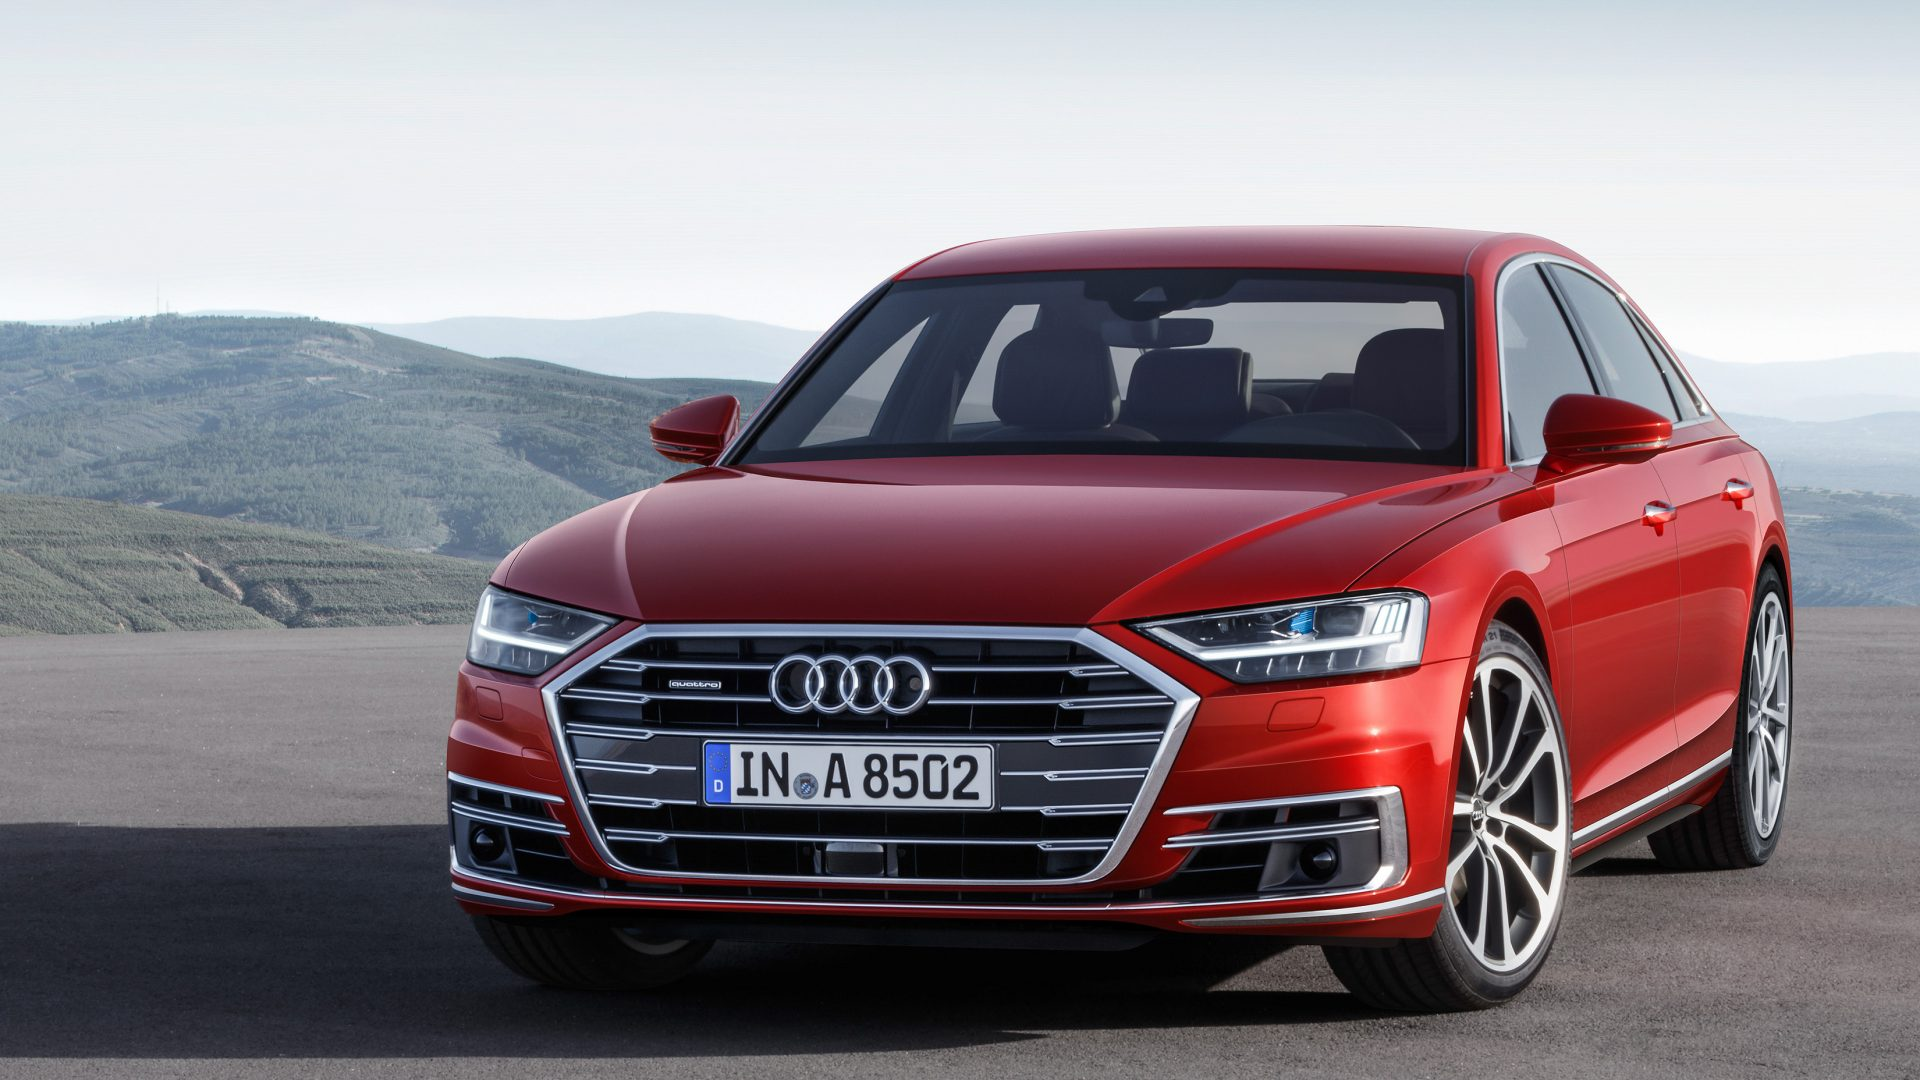 This Is The New Audi A8, Specifications, Engines And Pricing